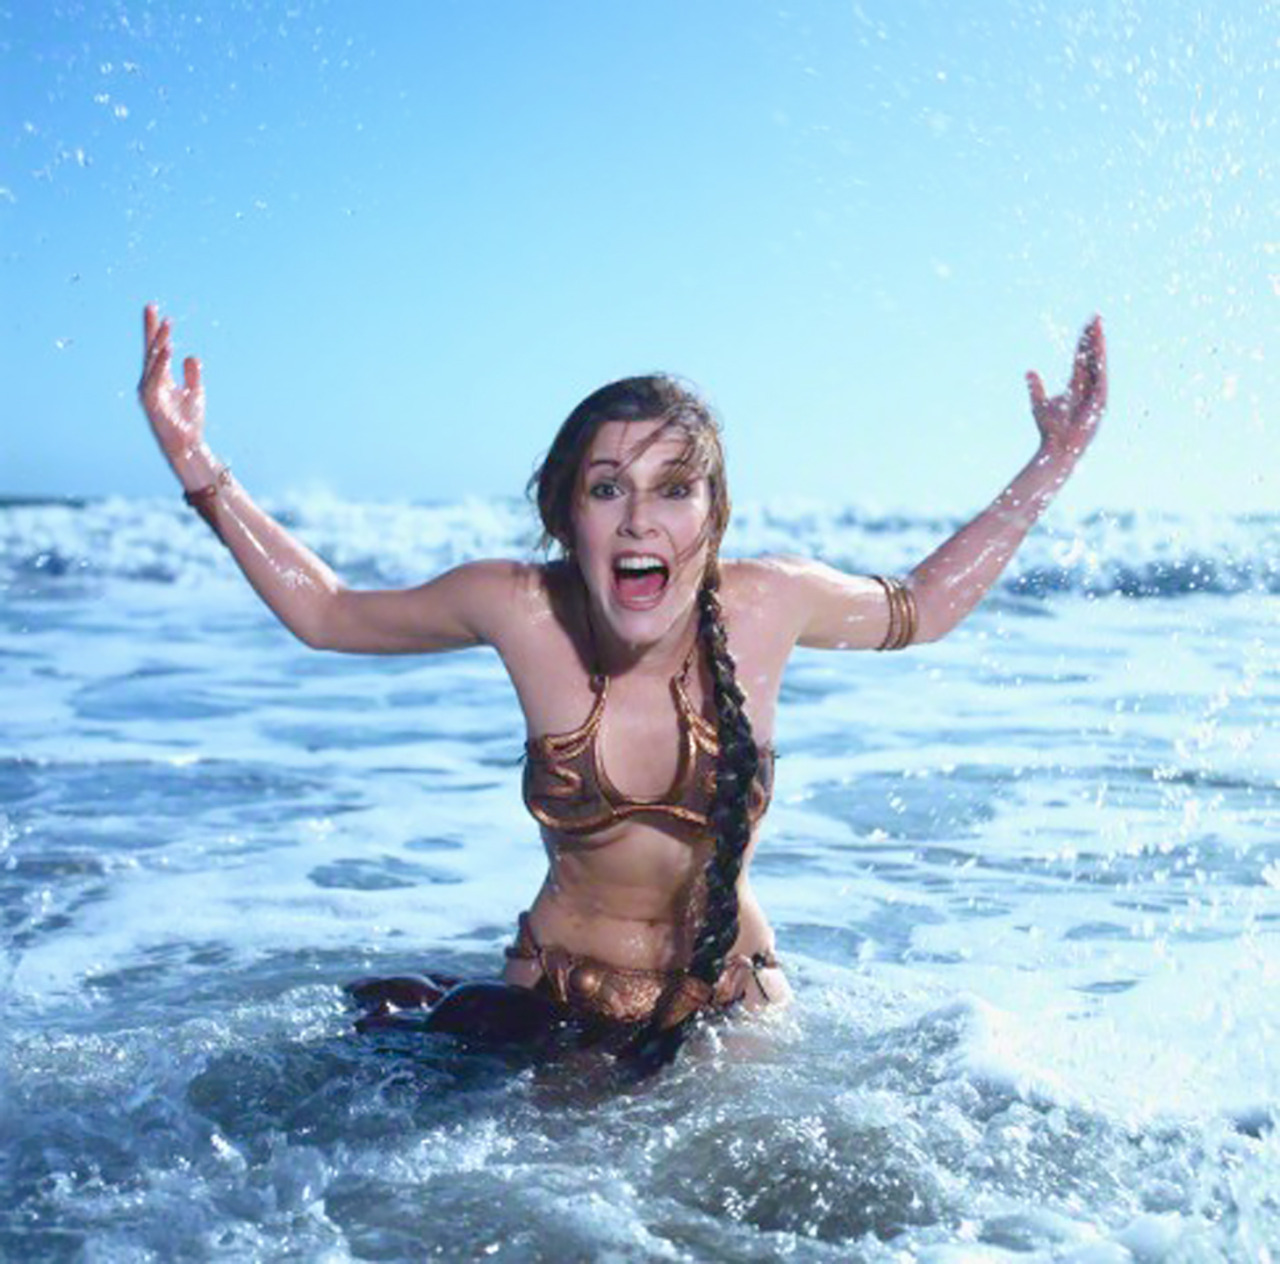 Carrie Fisher 1983 Rolling Stone Photoshoot photo 24